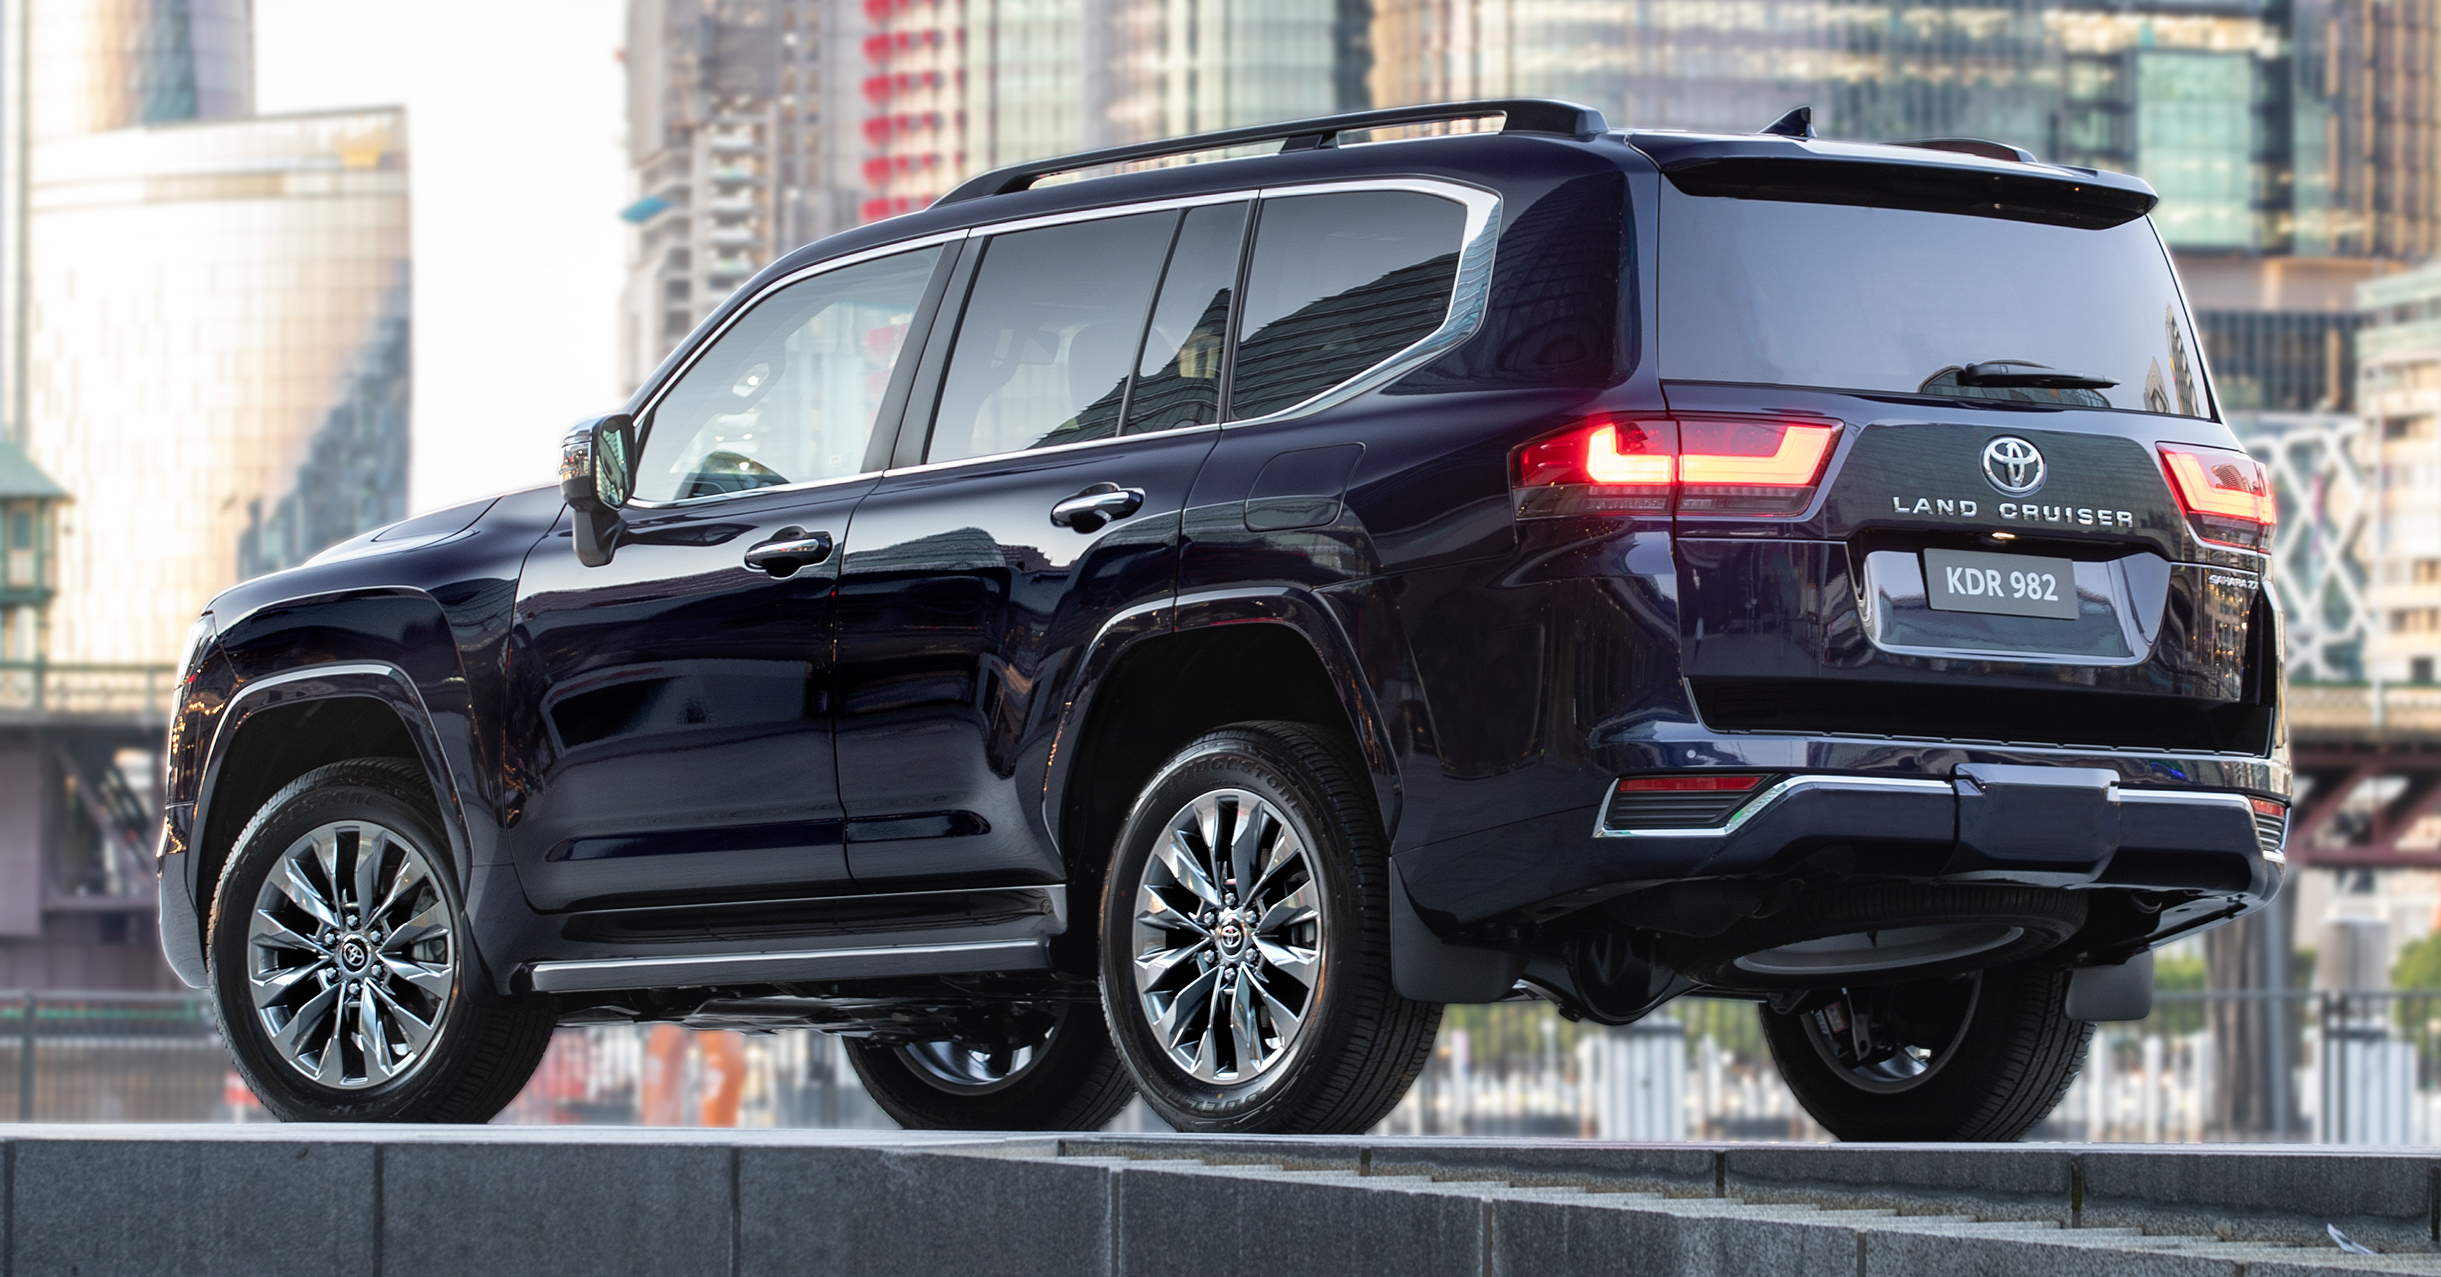 2022 Toyota Land Cruiser 300 launched in Australia